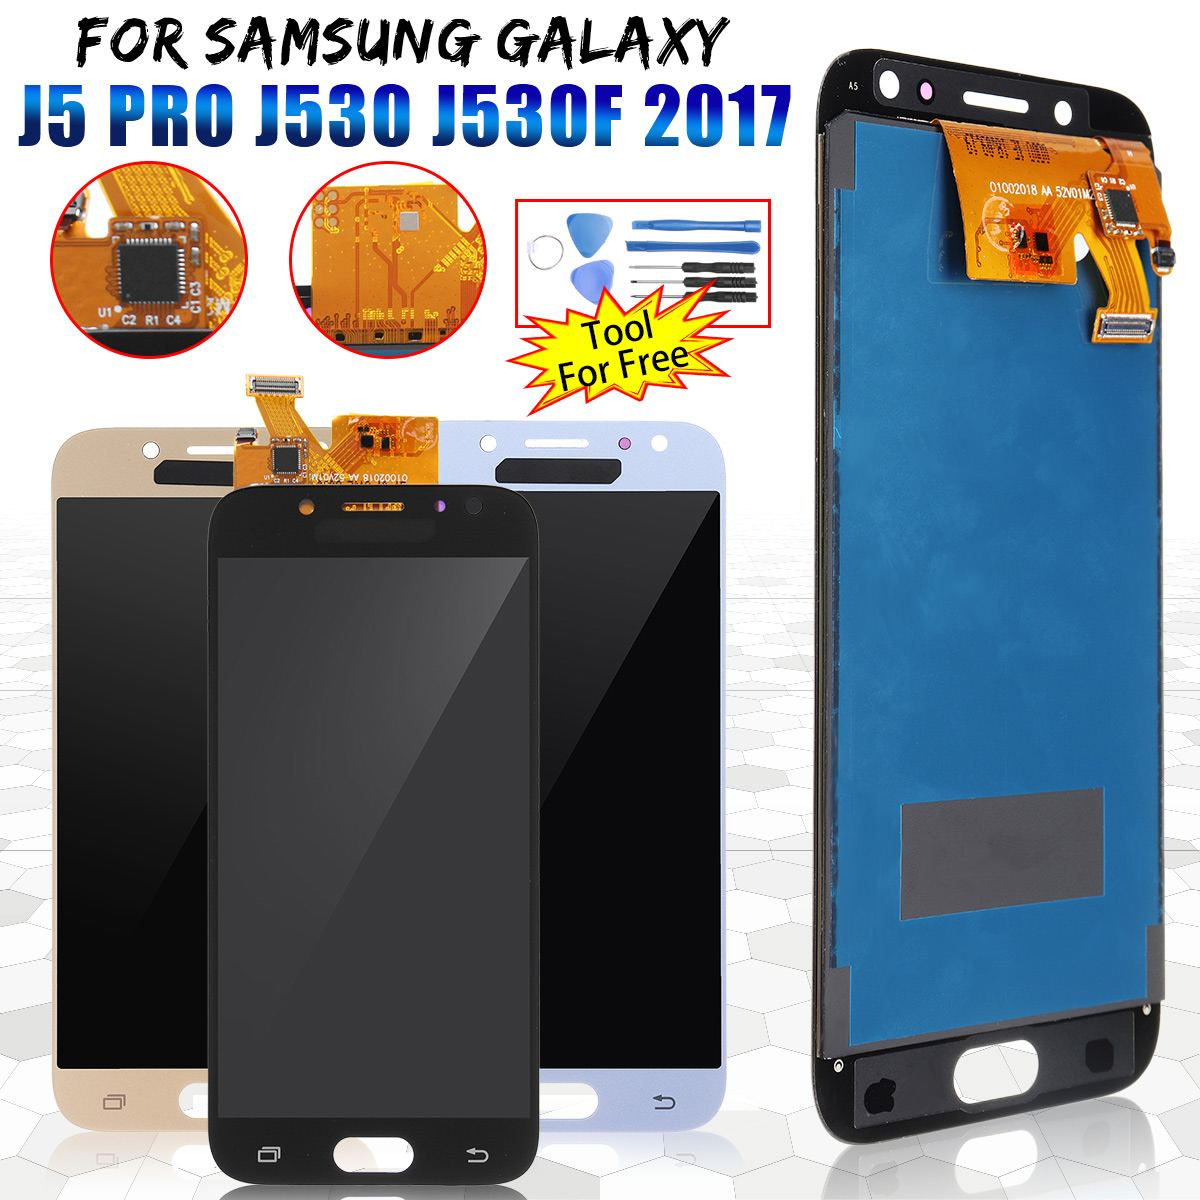 LCD <font><b>Display</b></font> Screen Digitizer + DIY Replacement Repair Tools for <font><b>Samsung</b></font> for <font><b>Galaxy</b></font> <font><b>J5</b></font> Pro <font><b>2017</b></font> J530 J530F Mobile Phone Fix Tool image